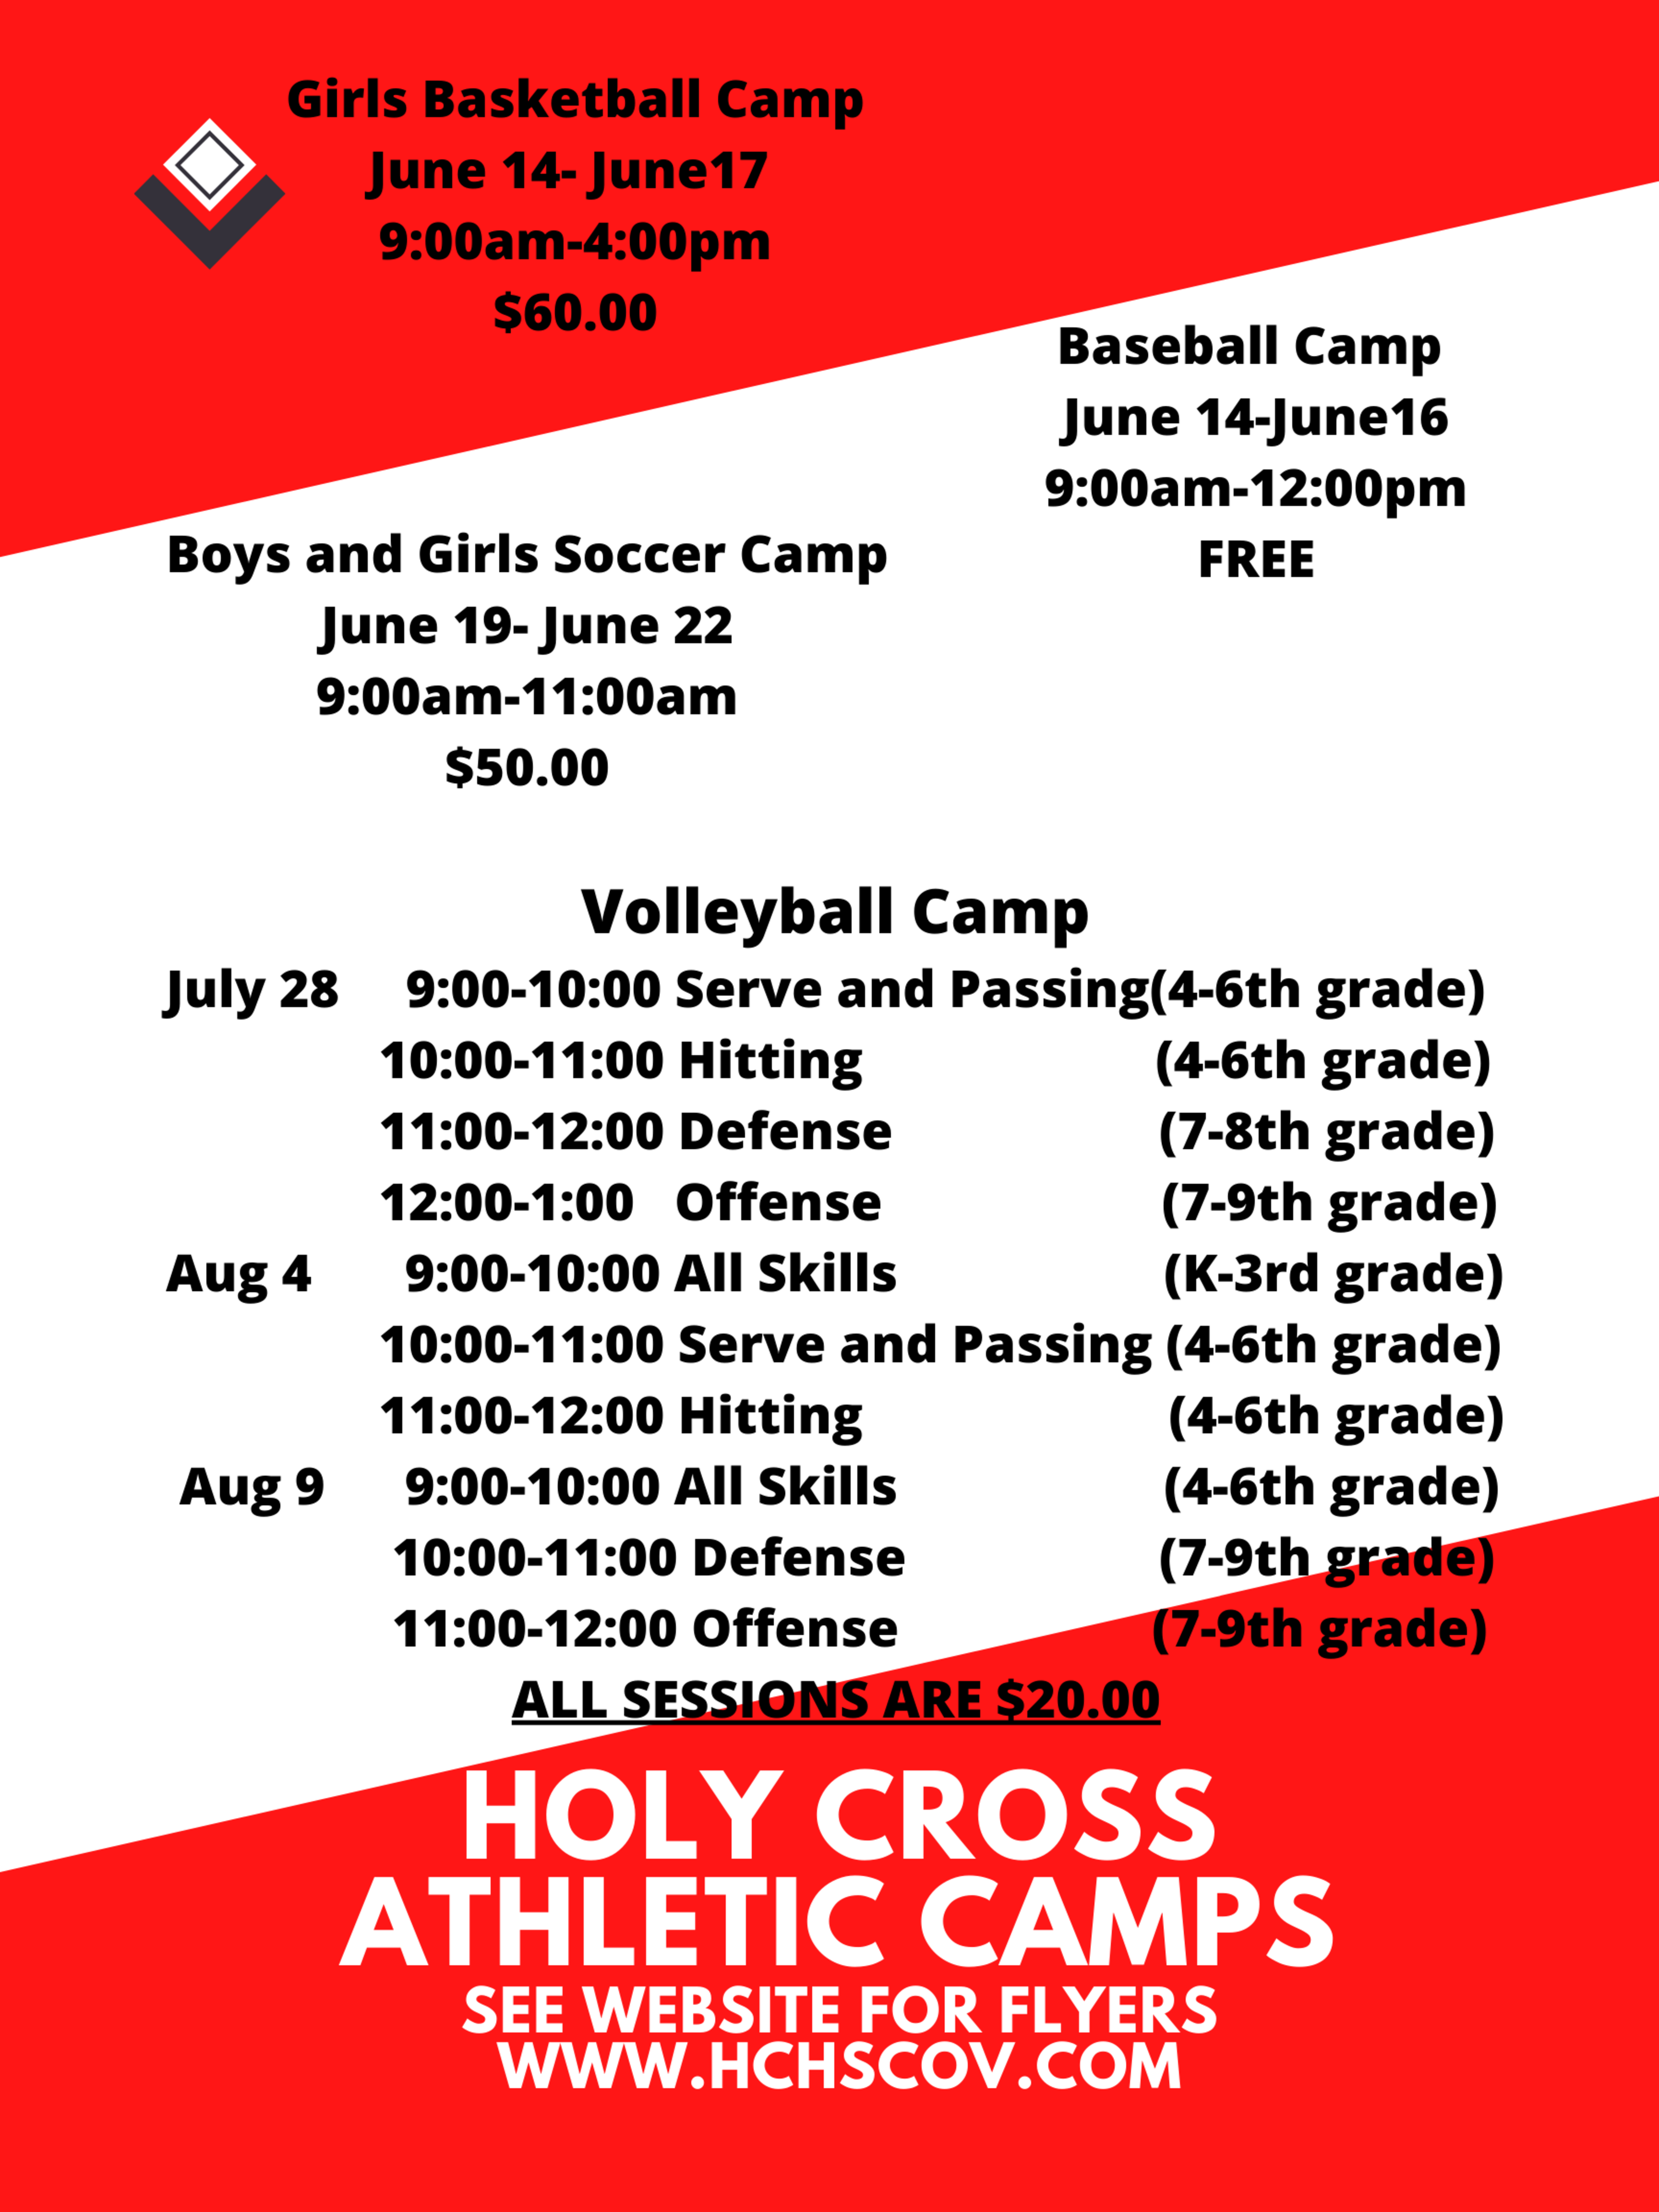 Holy Cross Athletic Camps 2